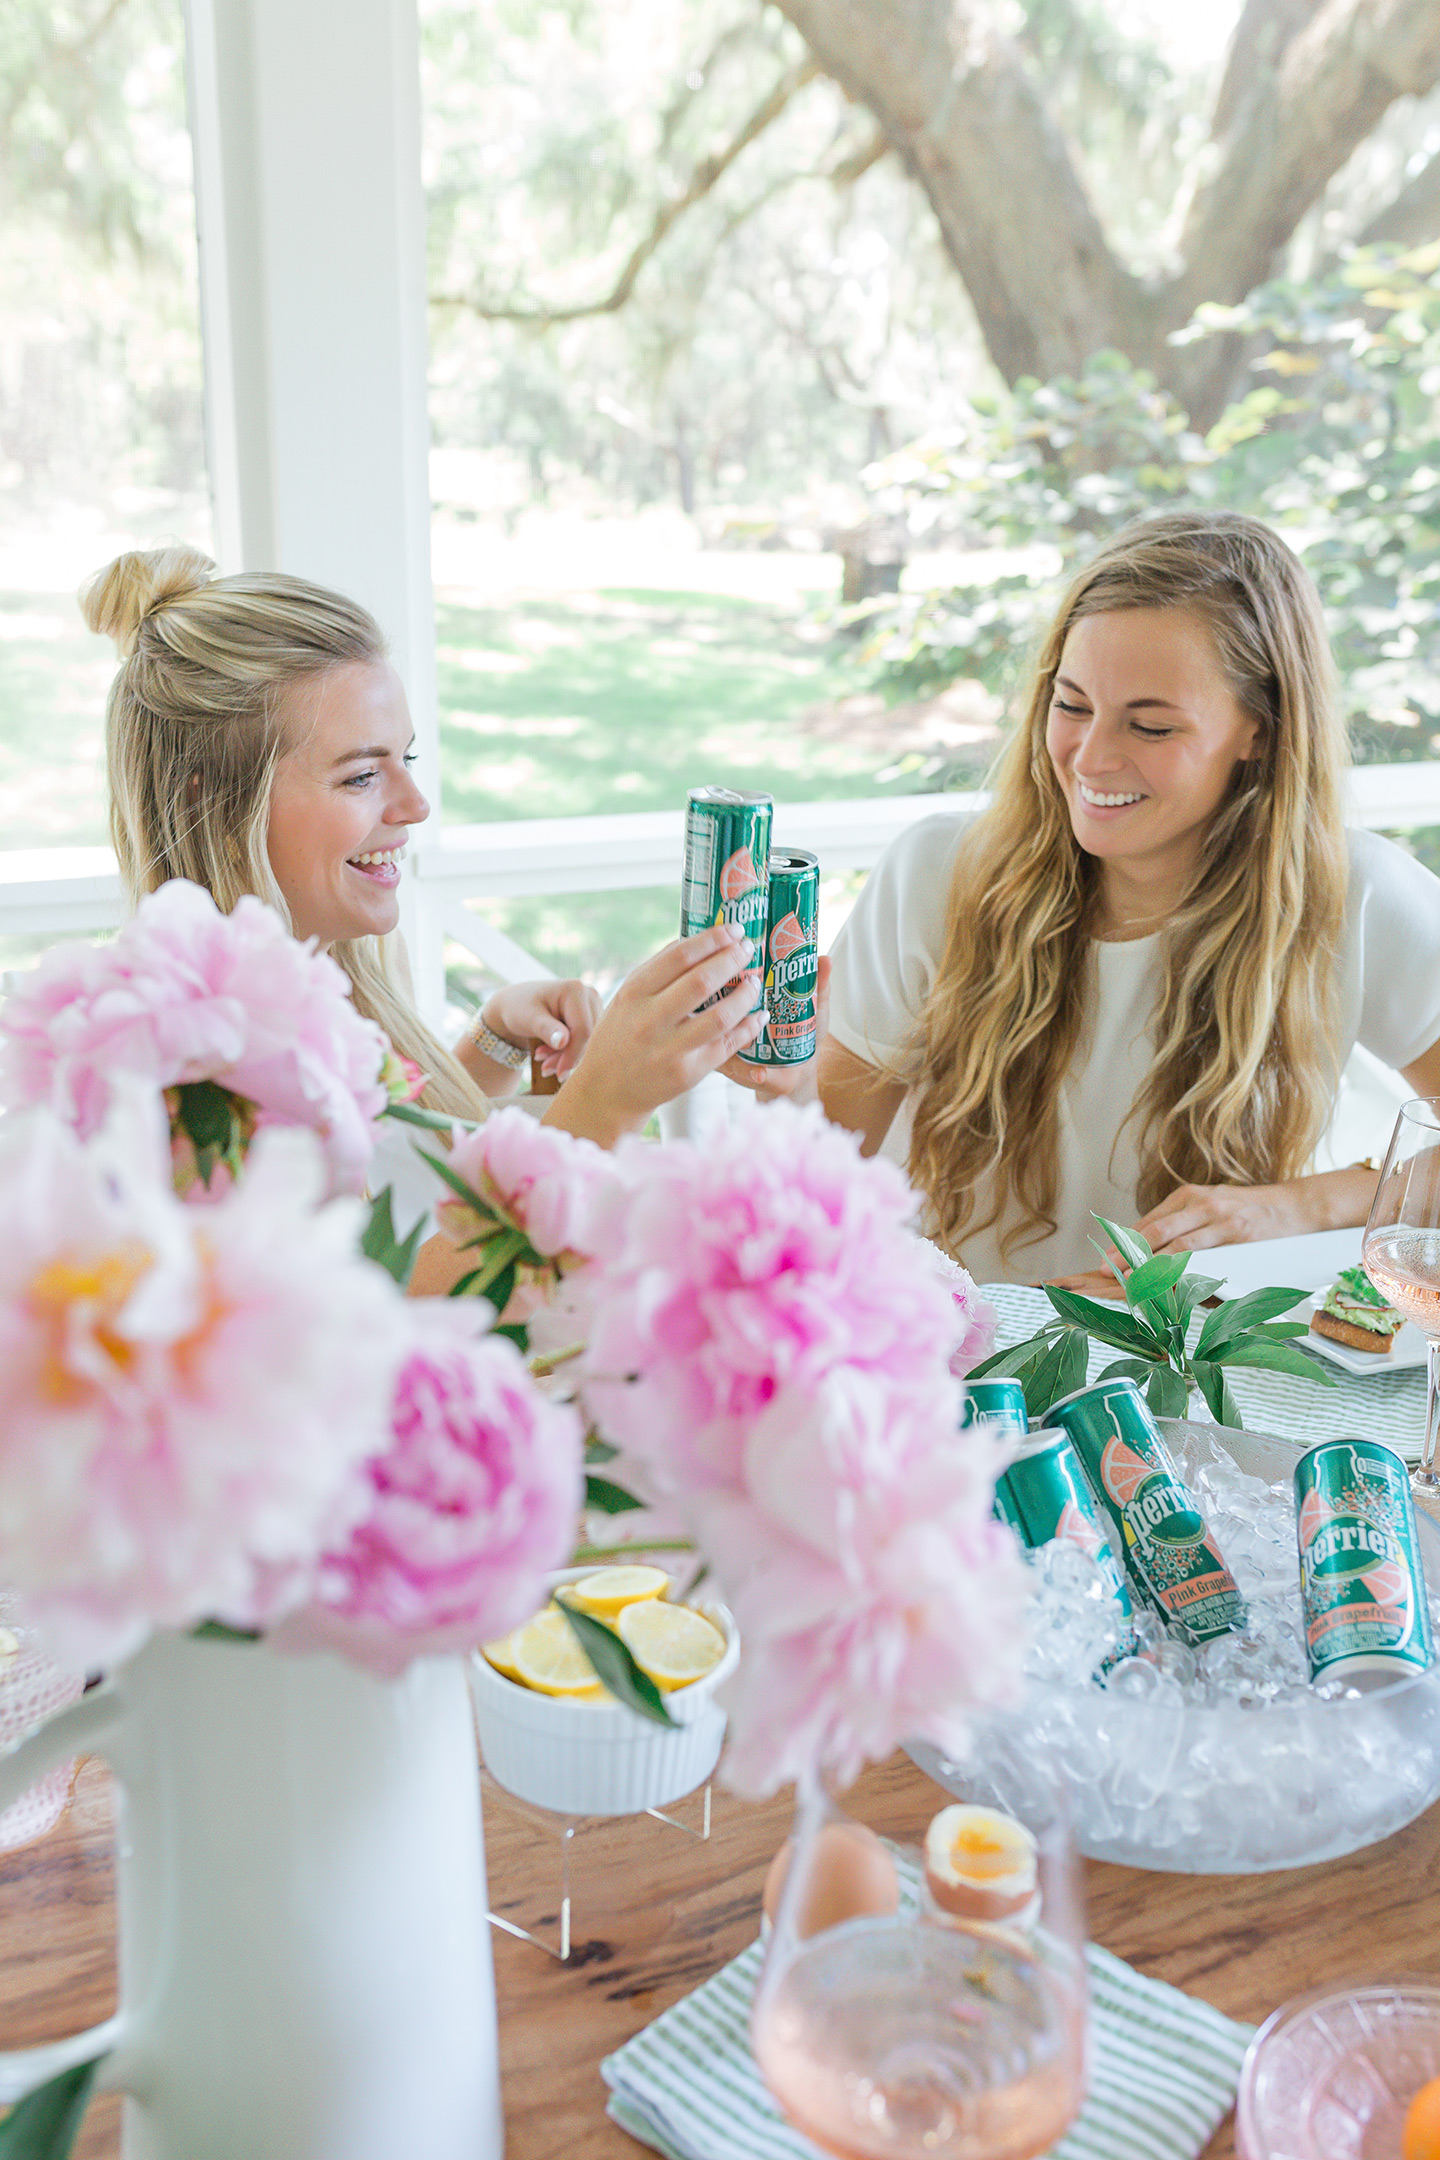 Summer Brunch with Perrier